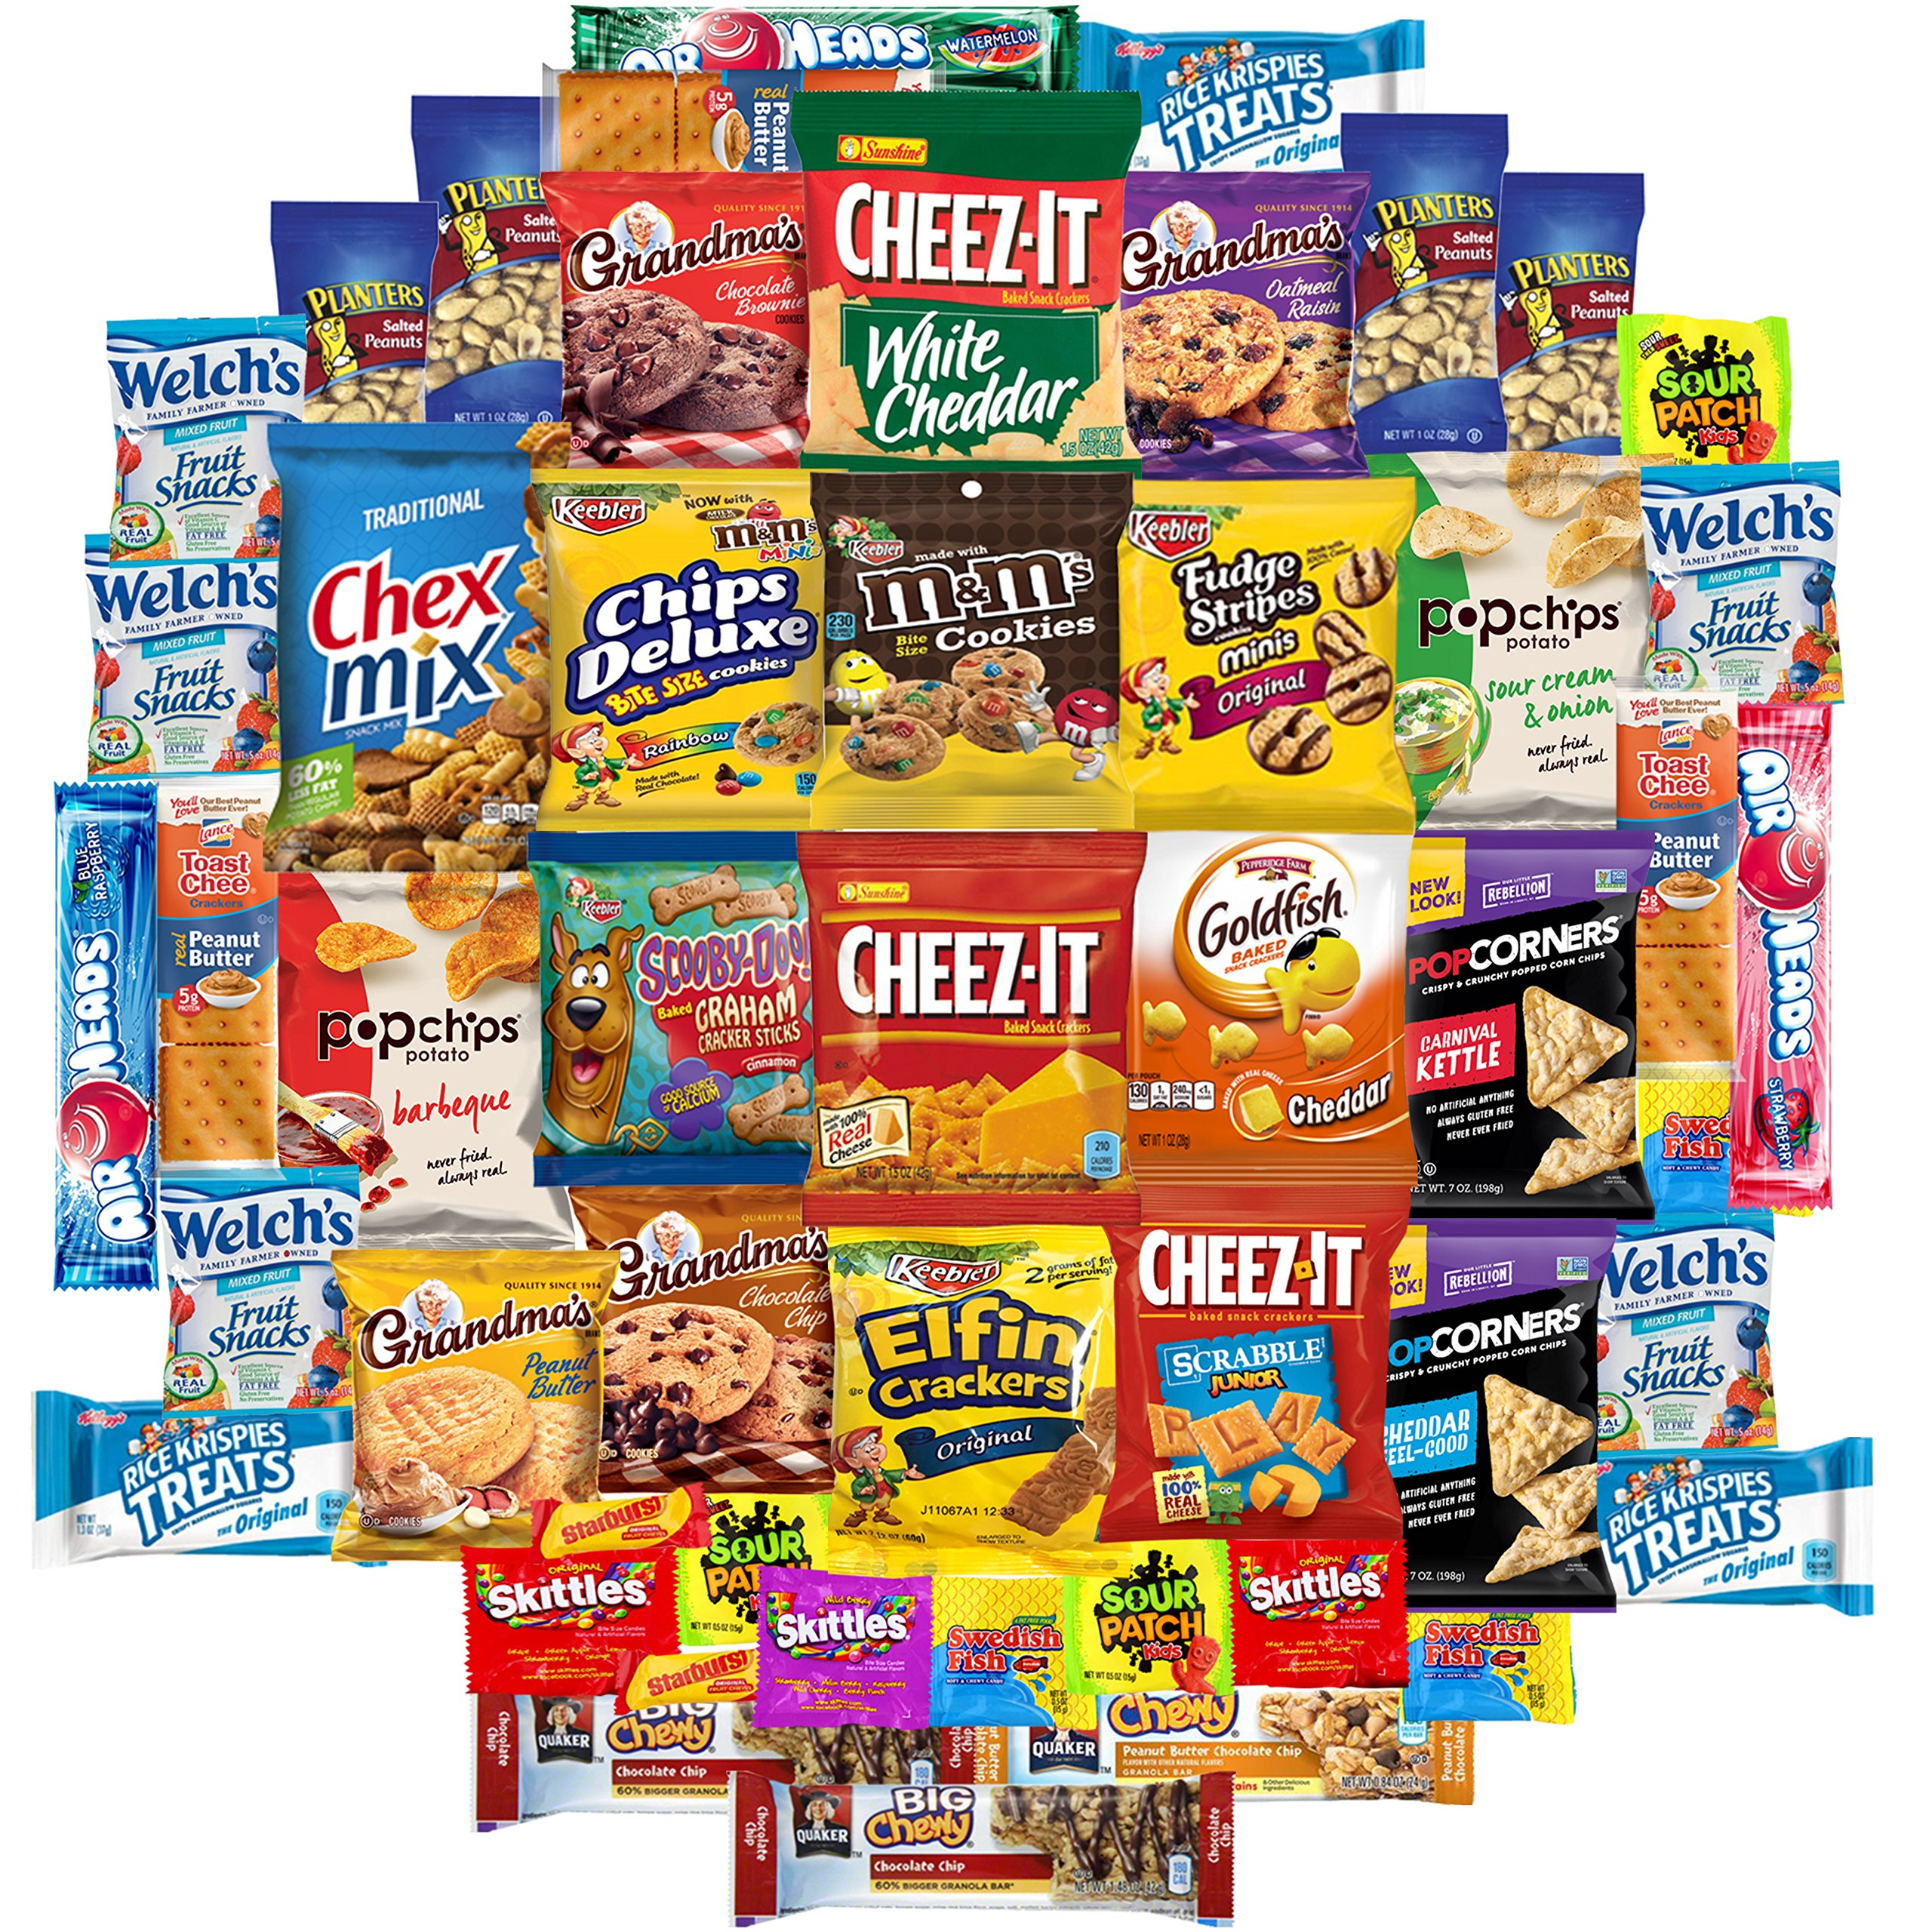 Cookies, Chips & Candies Care Package Variety Pack Bundle Sampler (150 Count) by Snack Chest (Image #2)